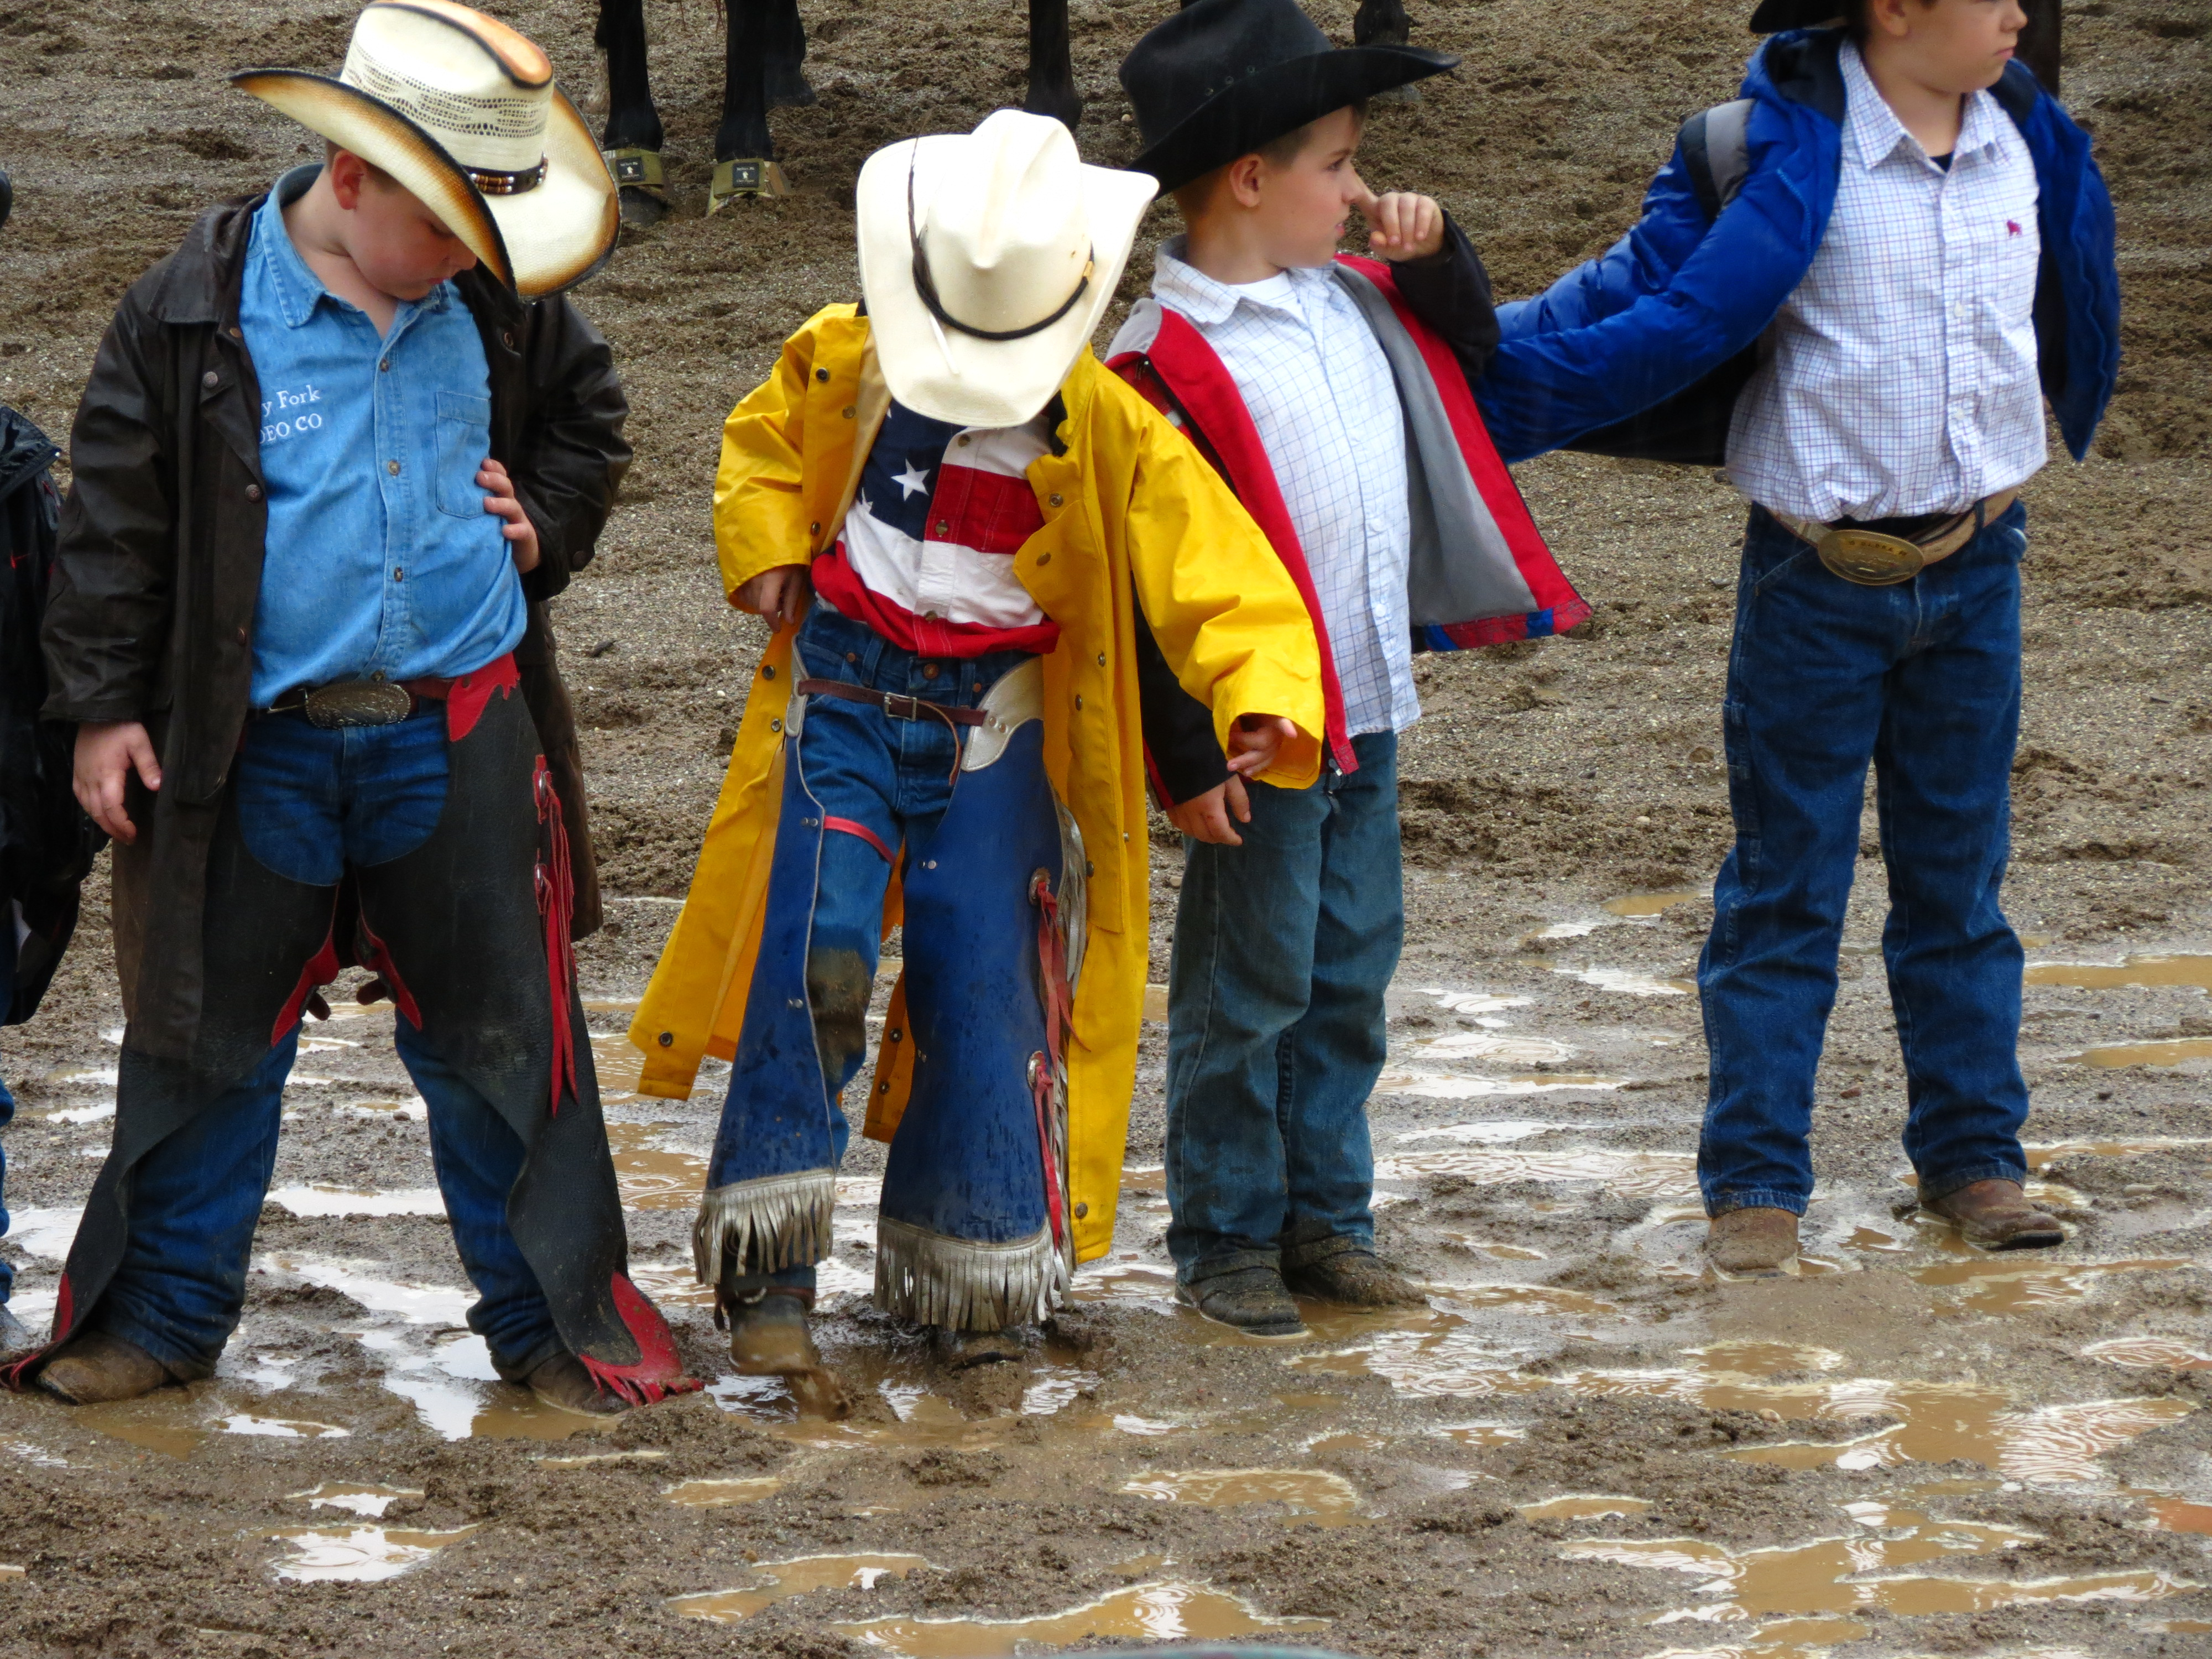 Youth Rodeo National Road And Zane Grey Museums Tiger Tales